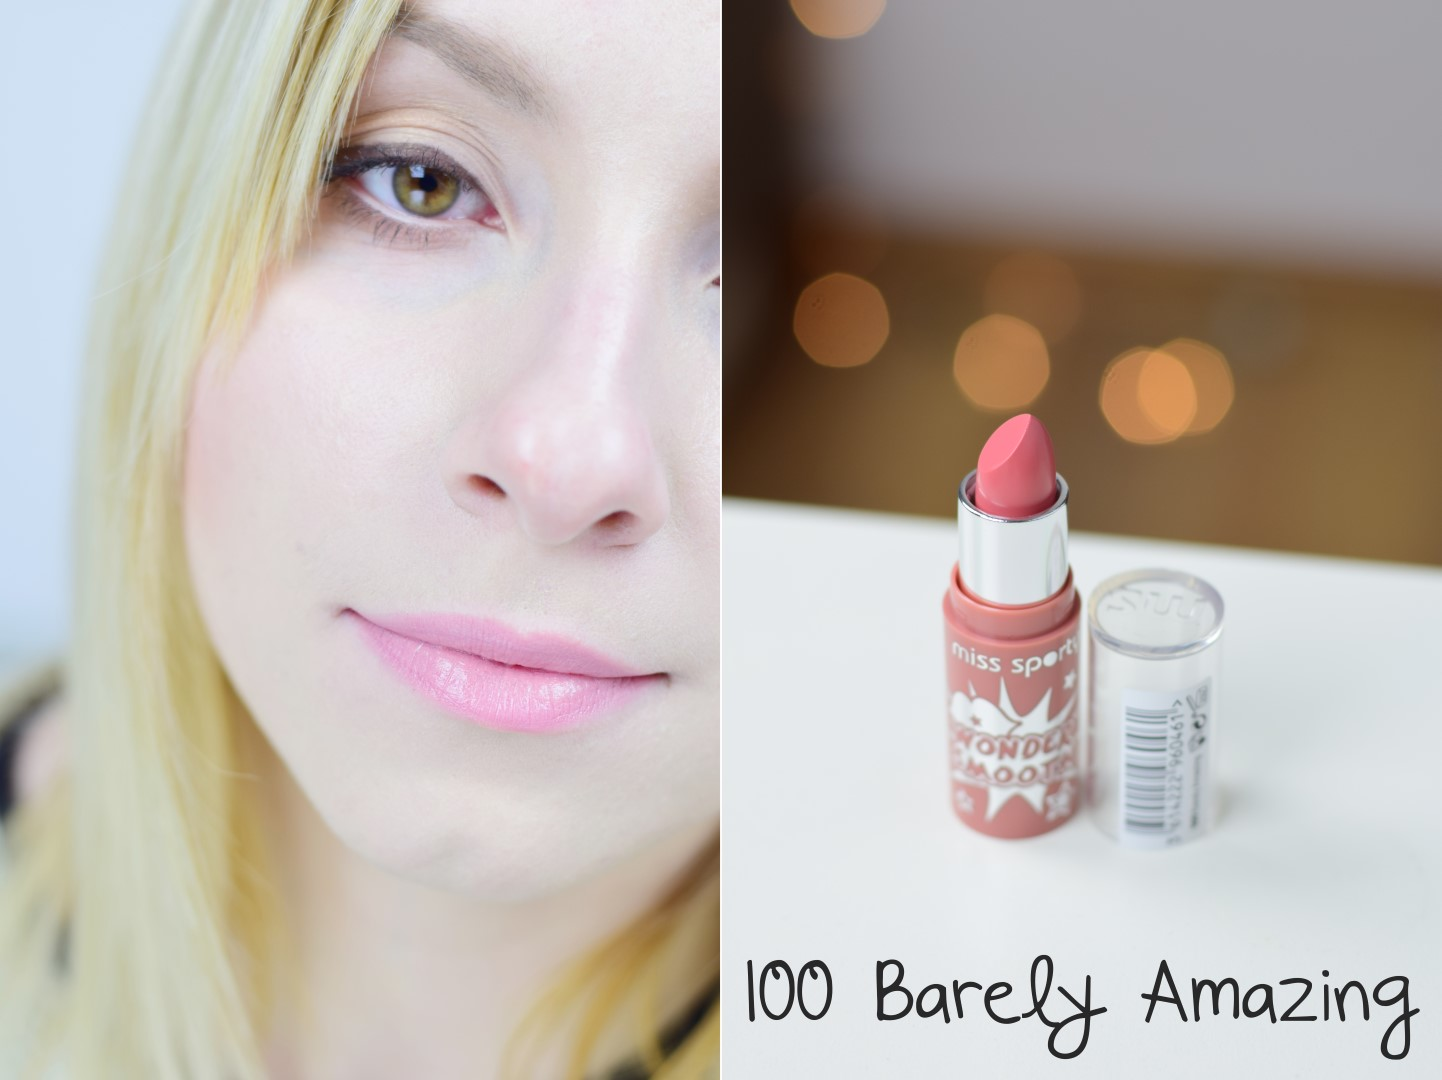 miss_sporty_wonder_smooth_blog_opinia_recenzja_swatche_barely_amazing_100